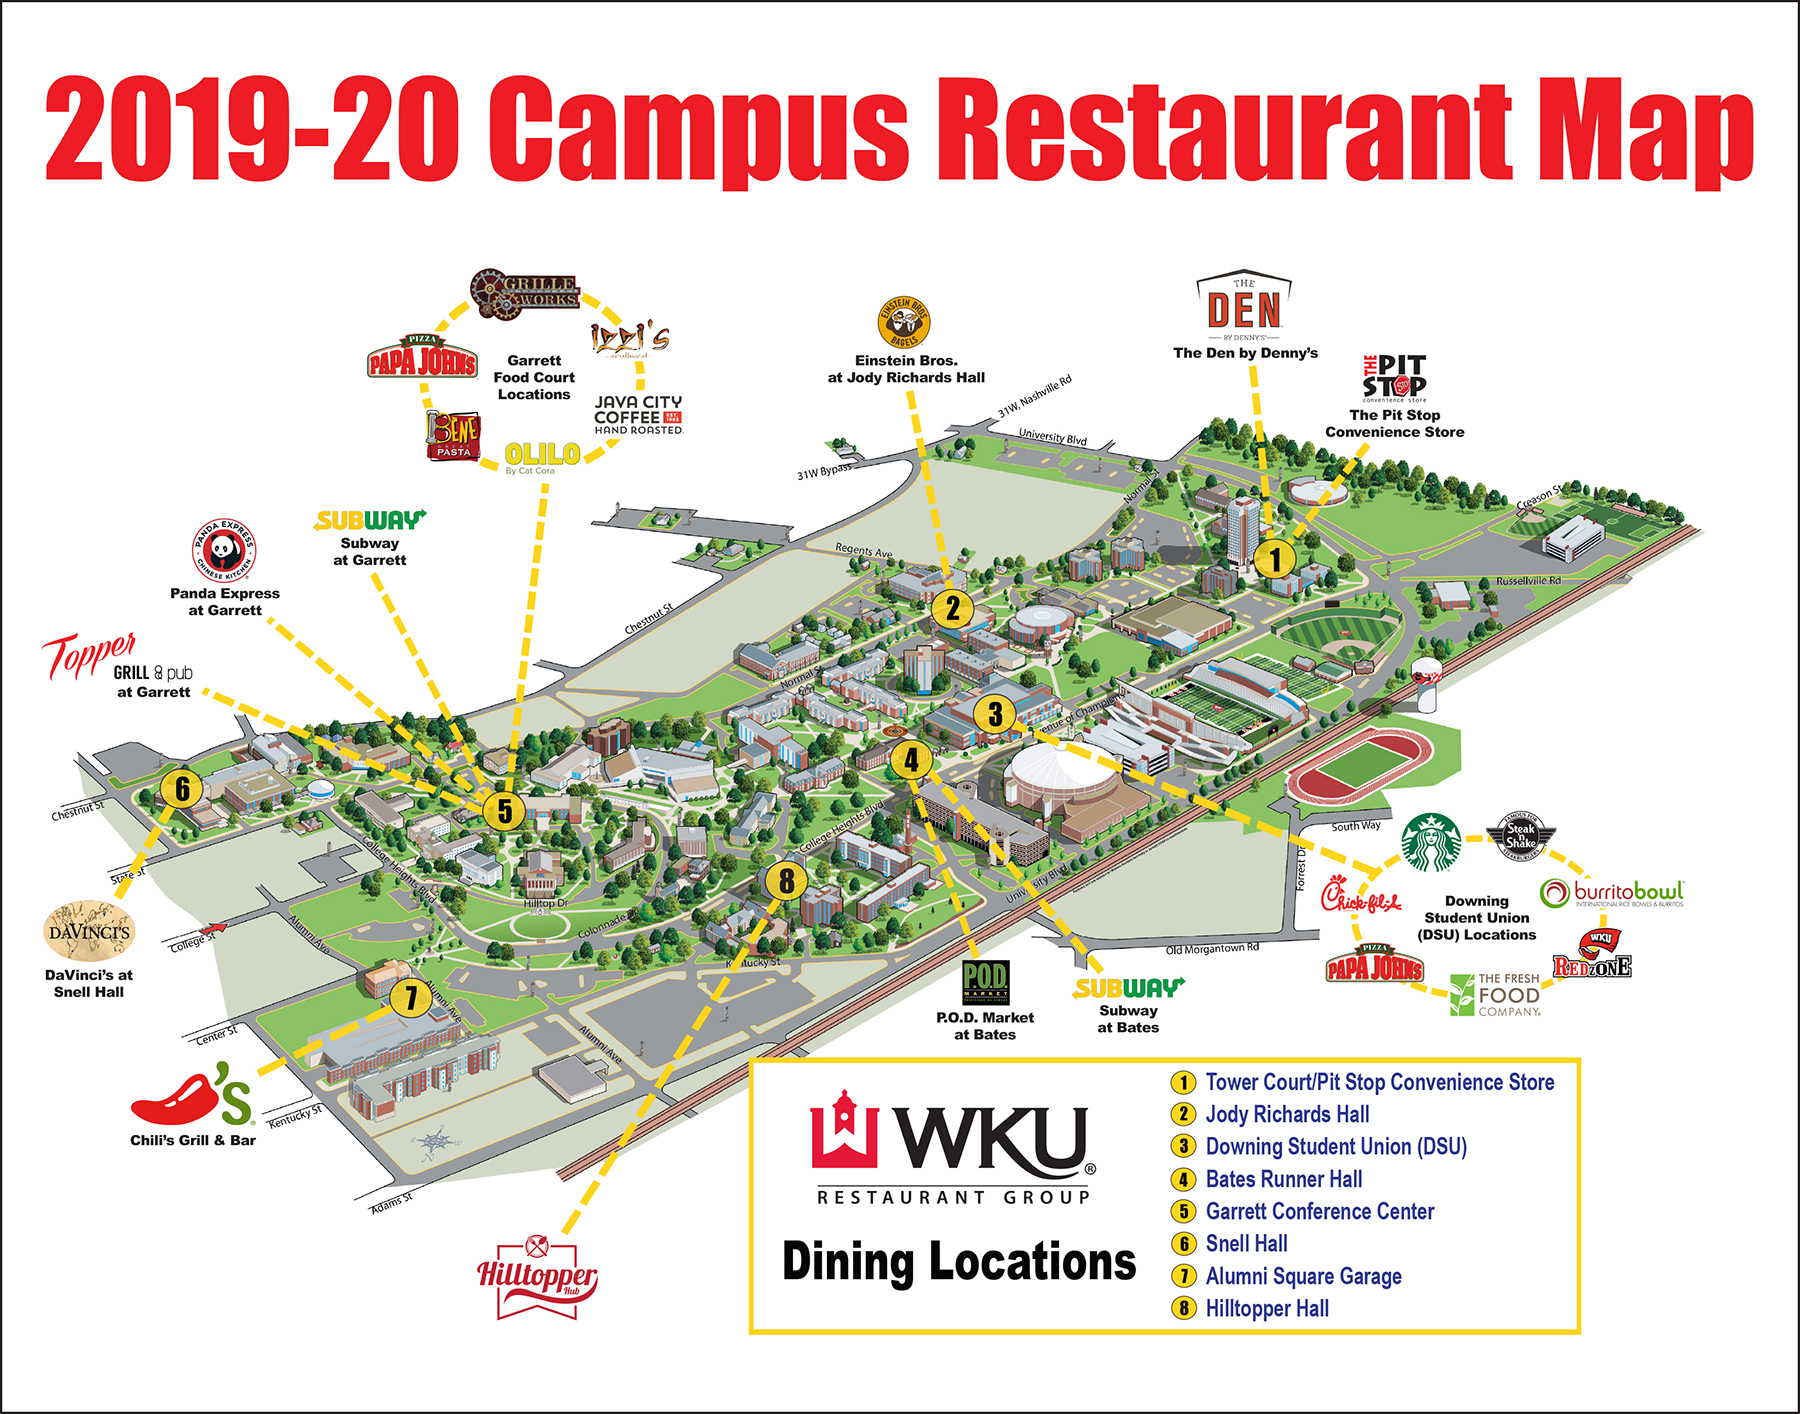 Wku Campus Map Campus Restaurant Map | Western Kentucky University